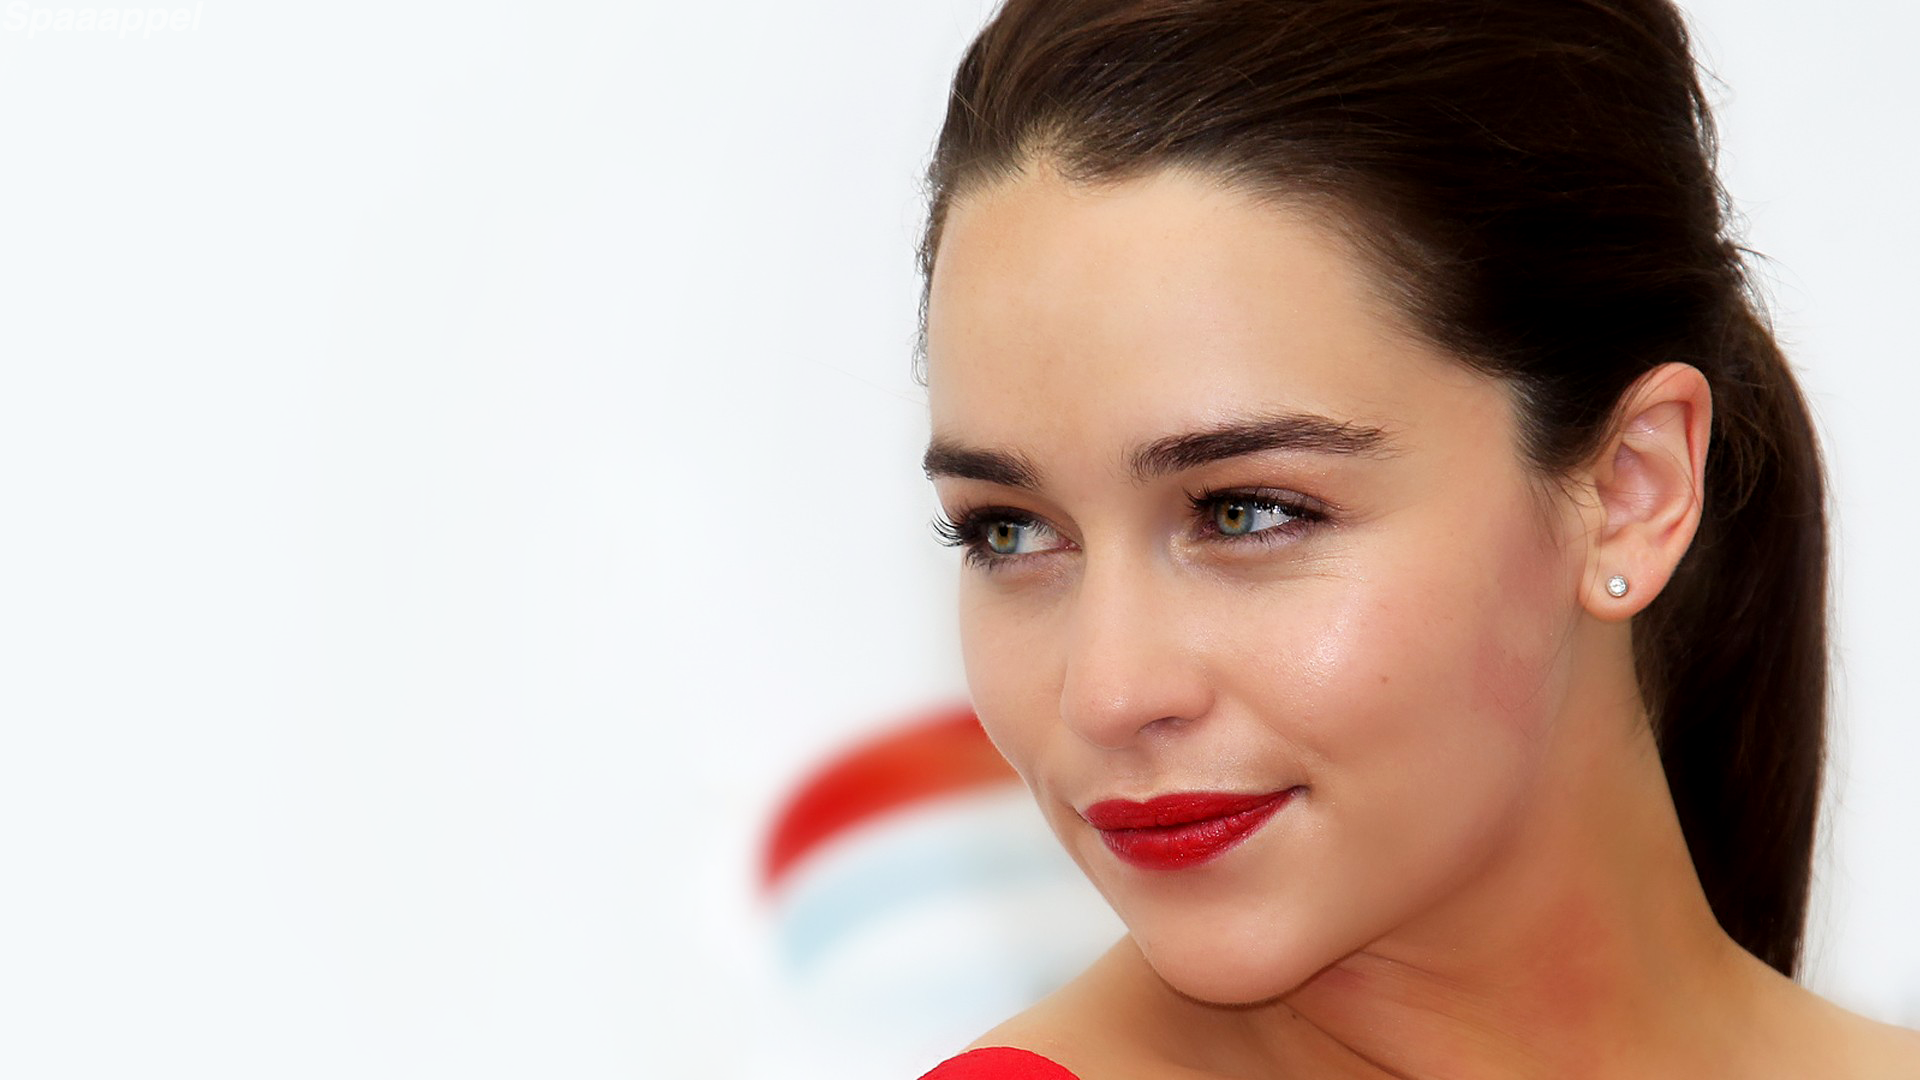 wonderful emilia clarke beautiful eye and attractive lips still free desktop hd mobile background images